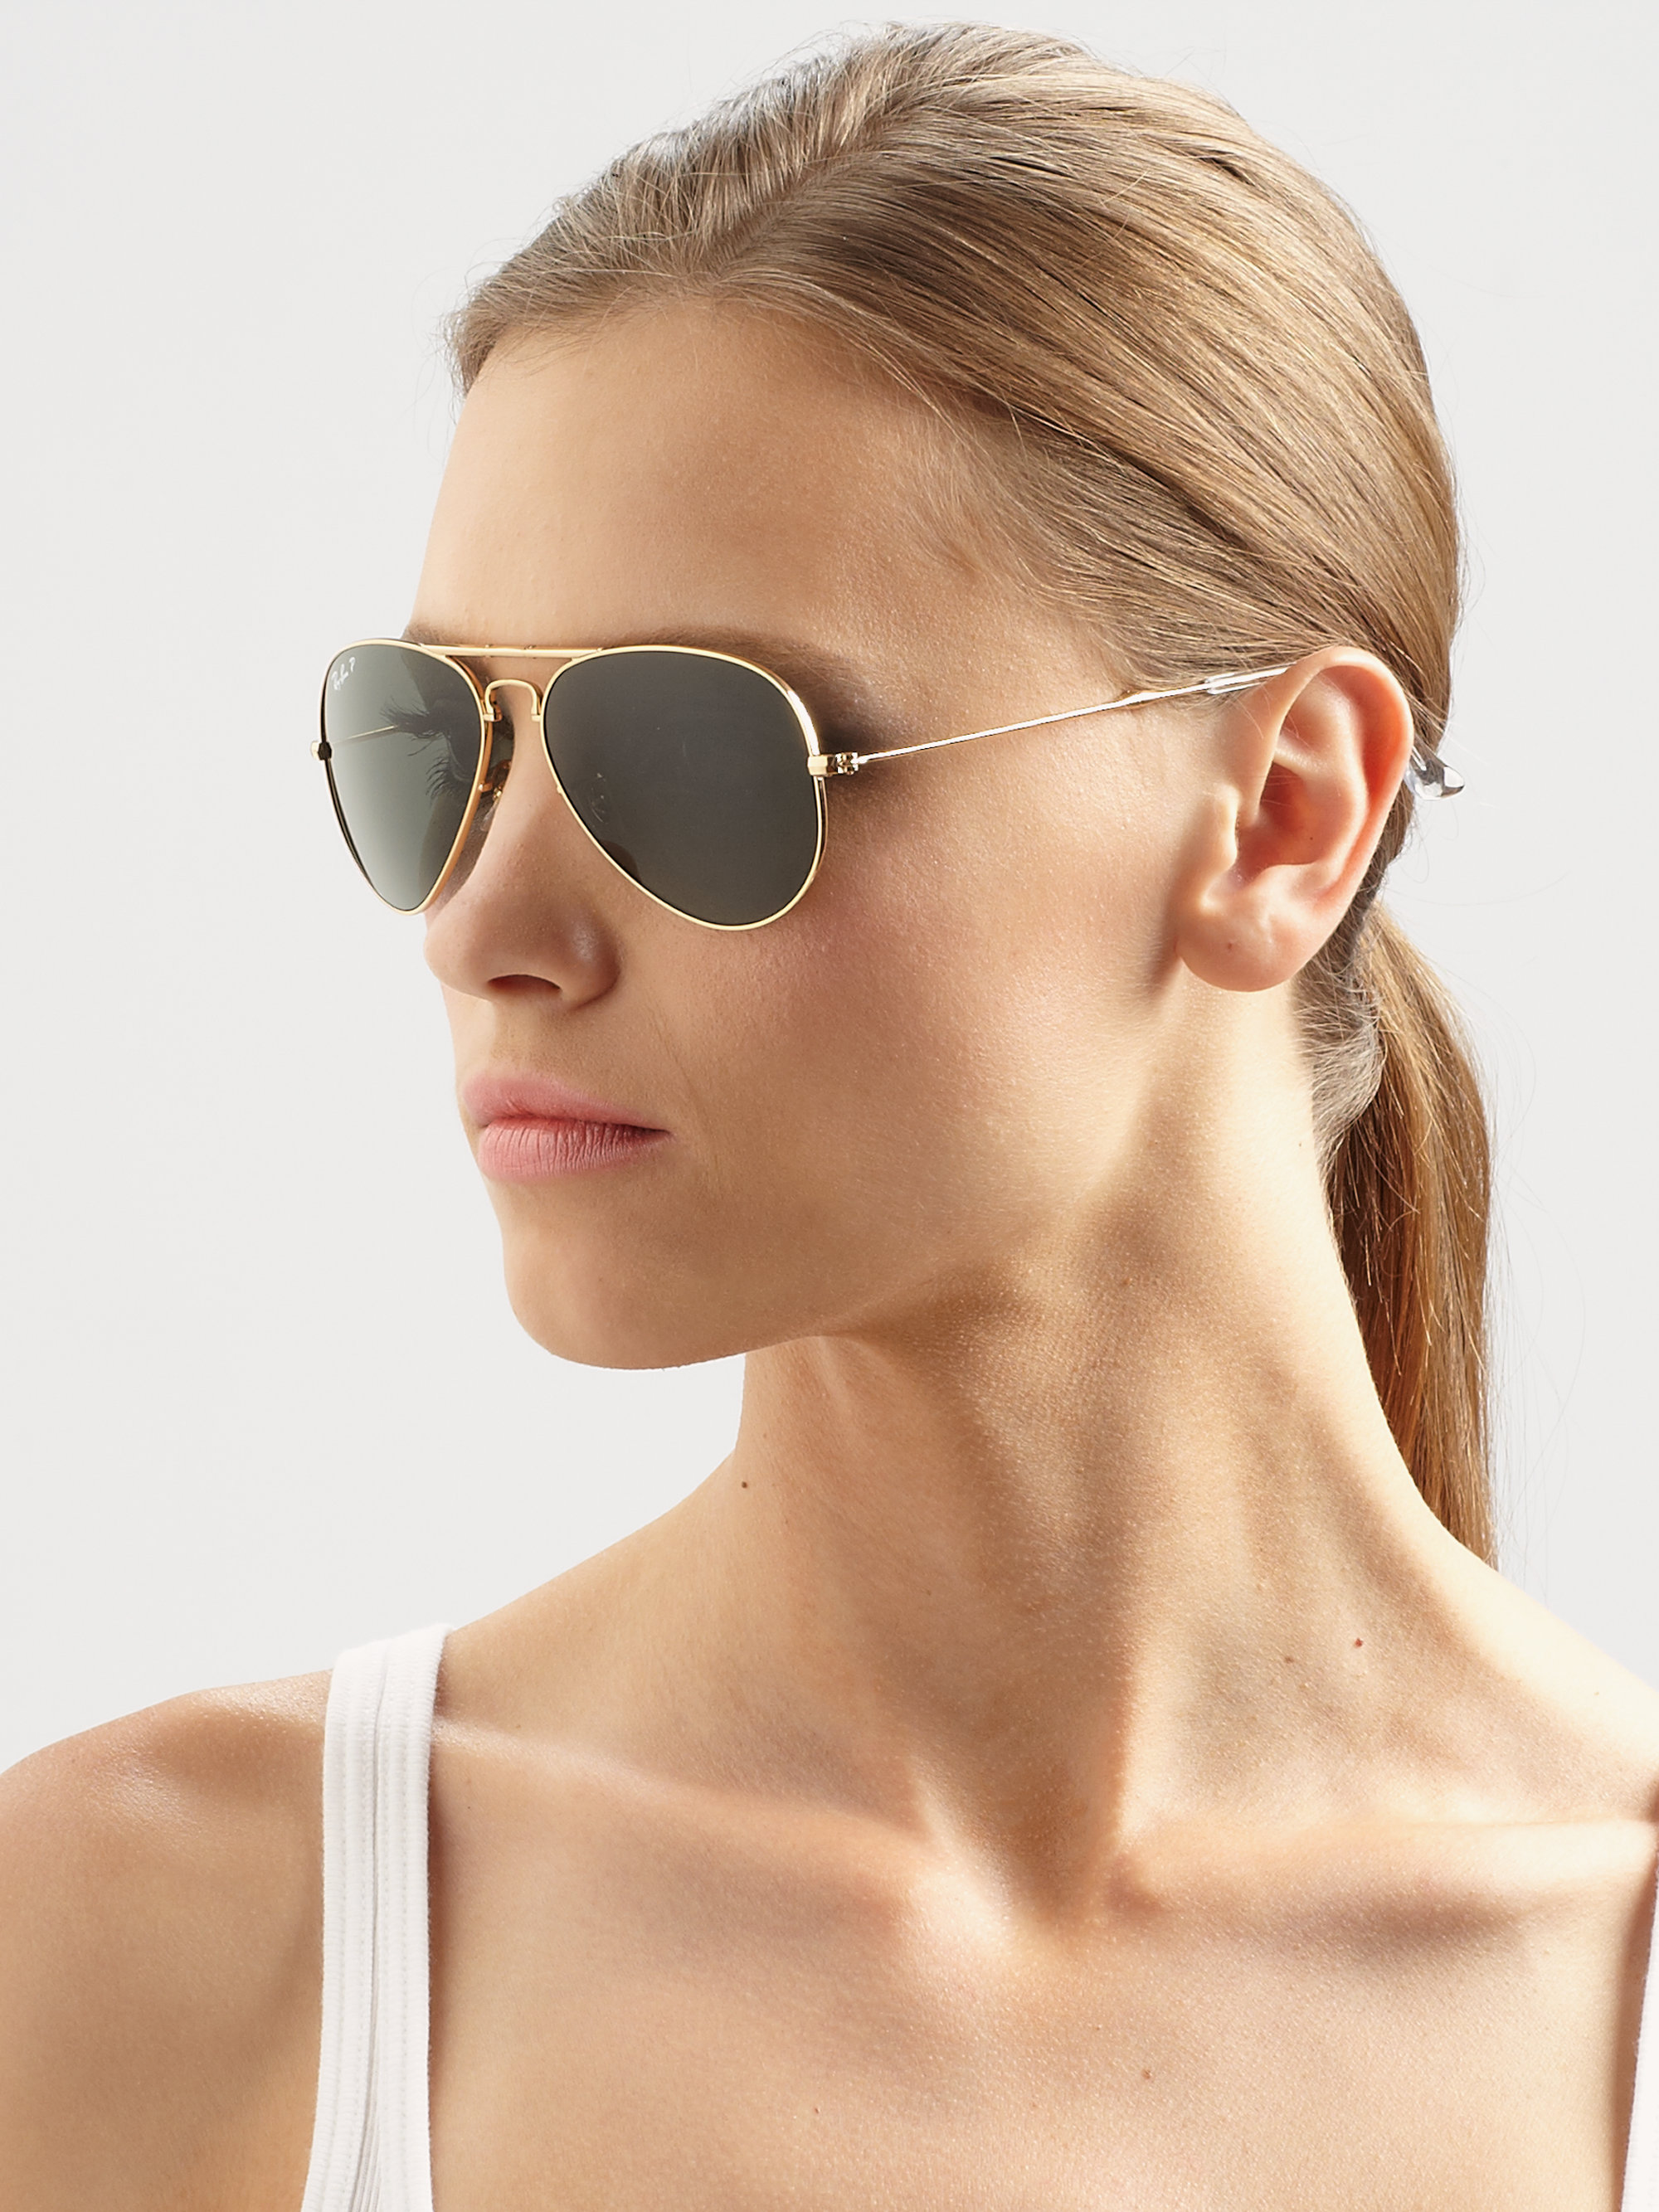 Ray Ban Metal Aviator Sunglasses  ray ban metal folding aviator sunglasses in metallic lyst